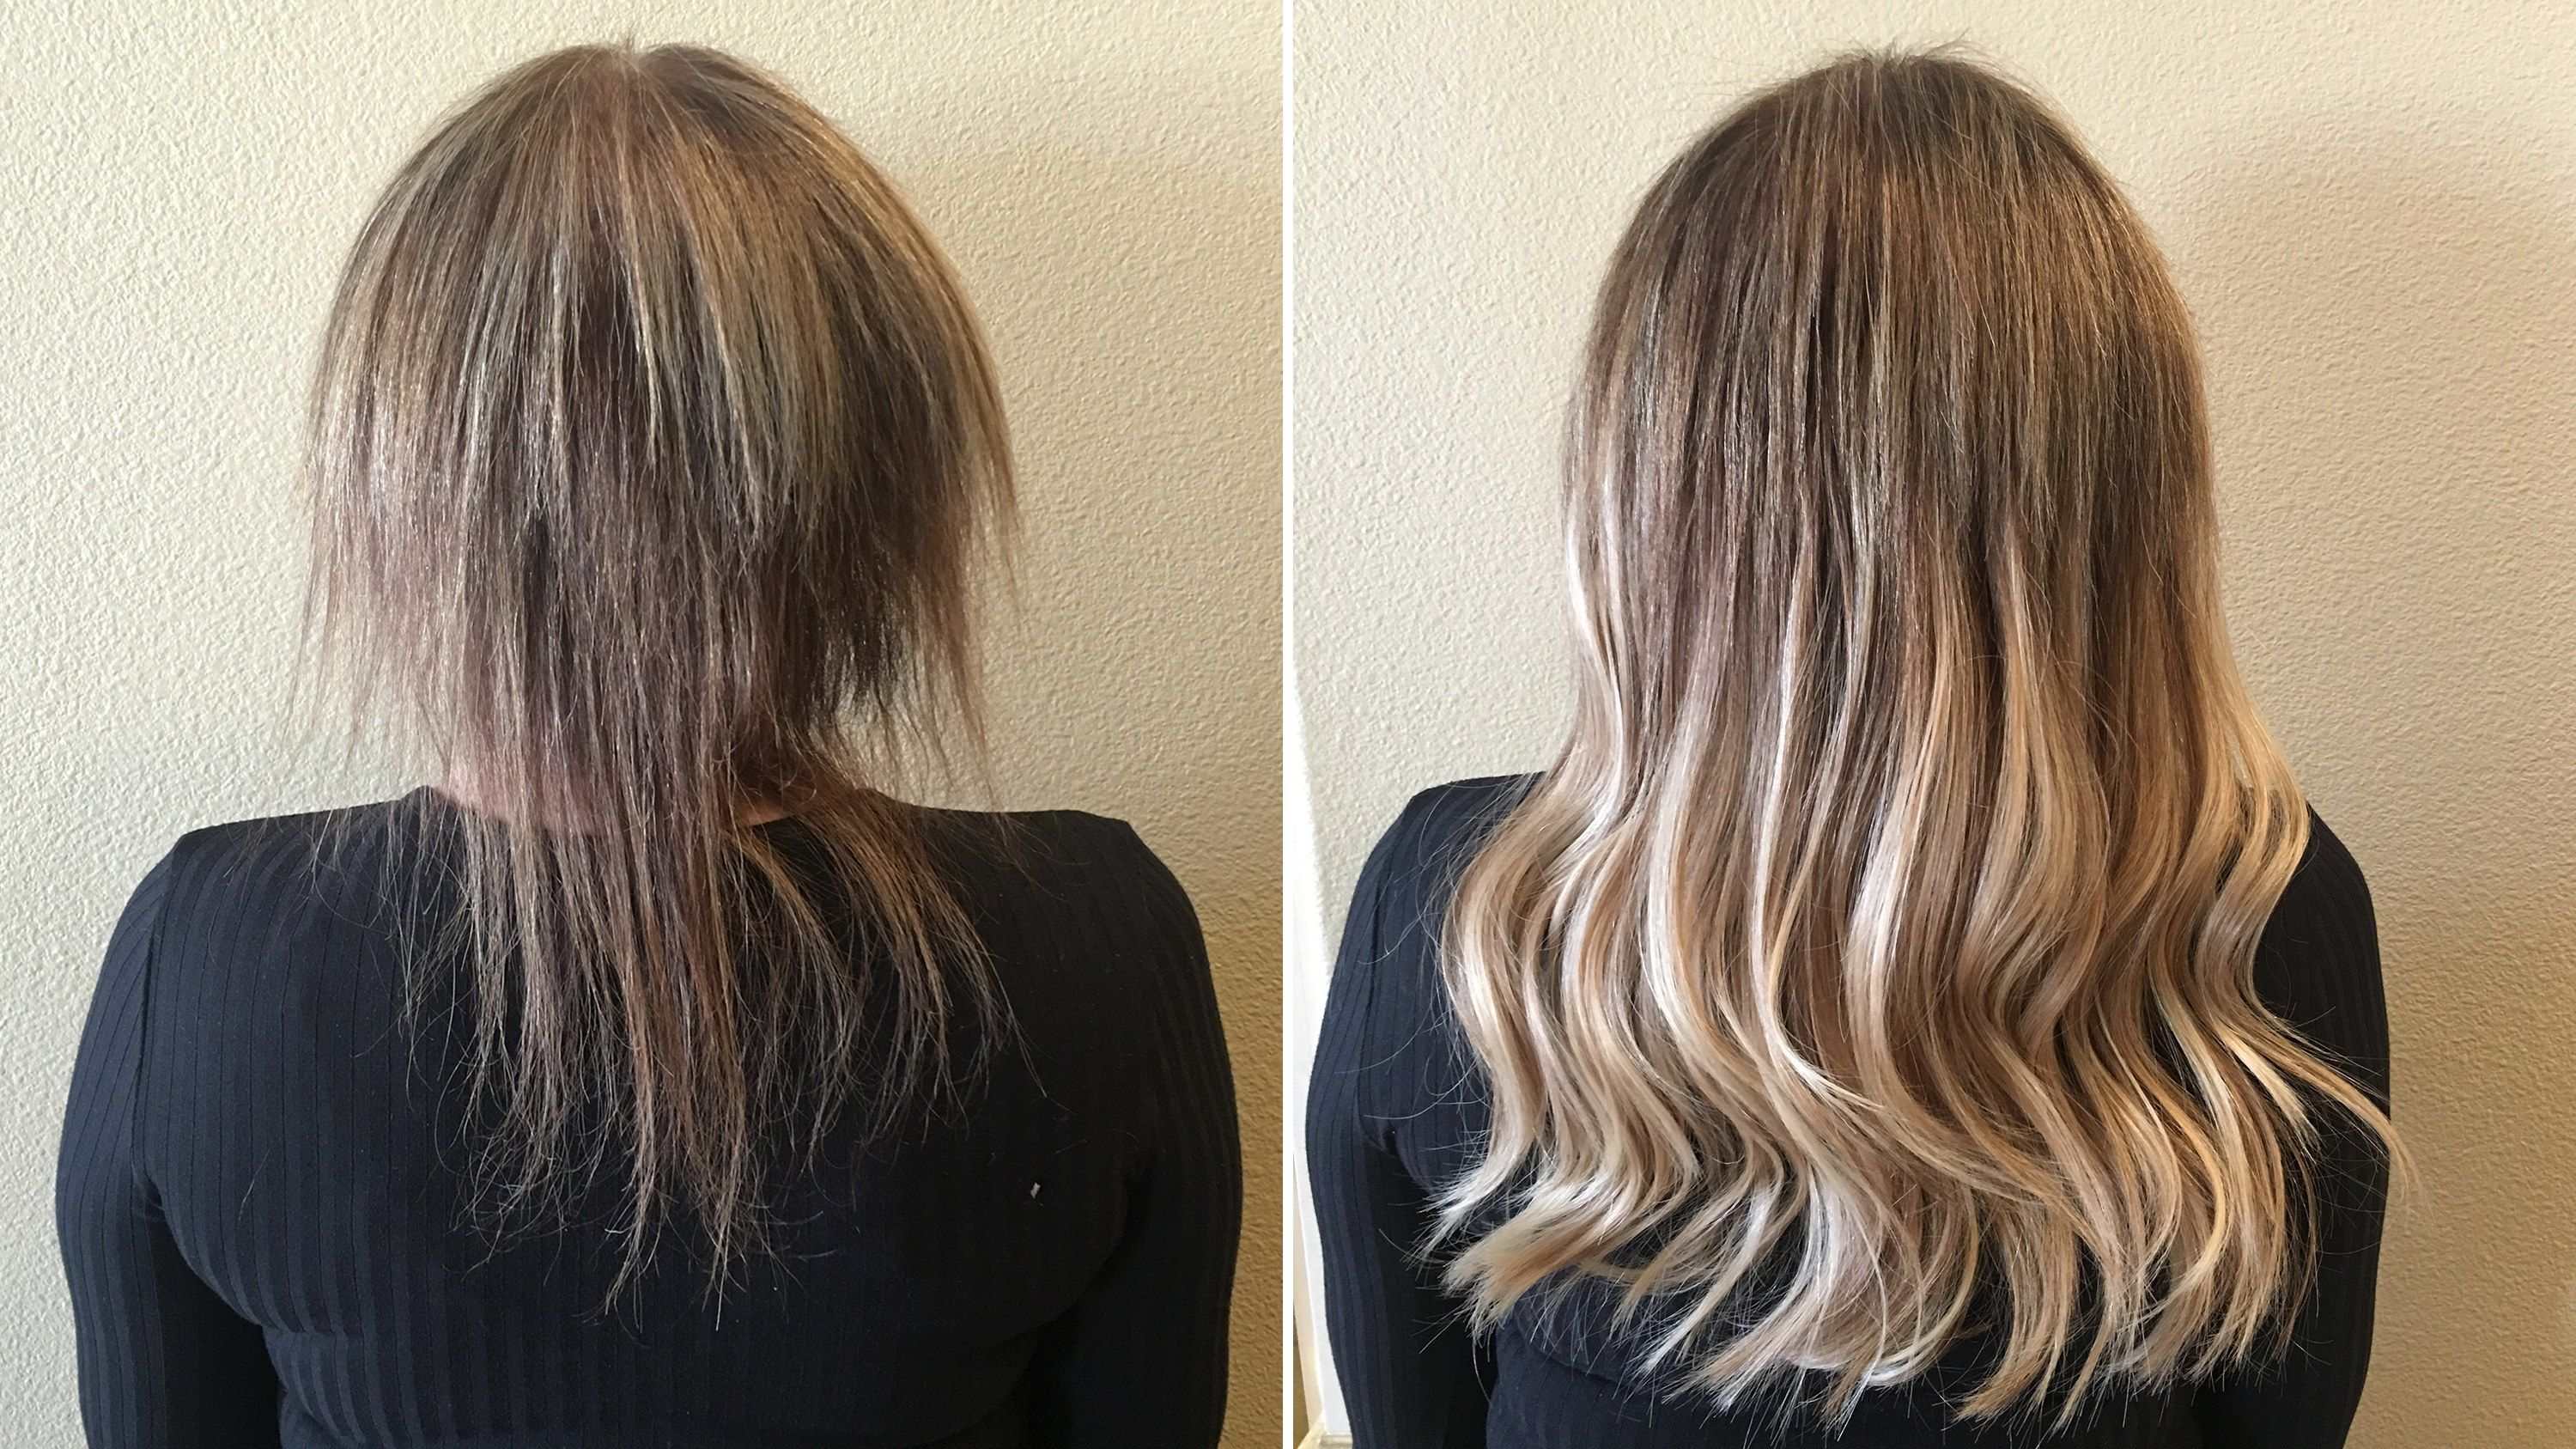 The Most Shocking Hair Extension Before and